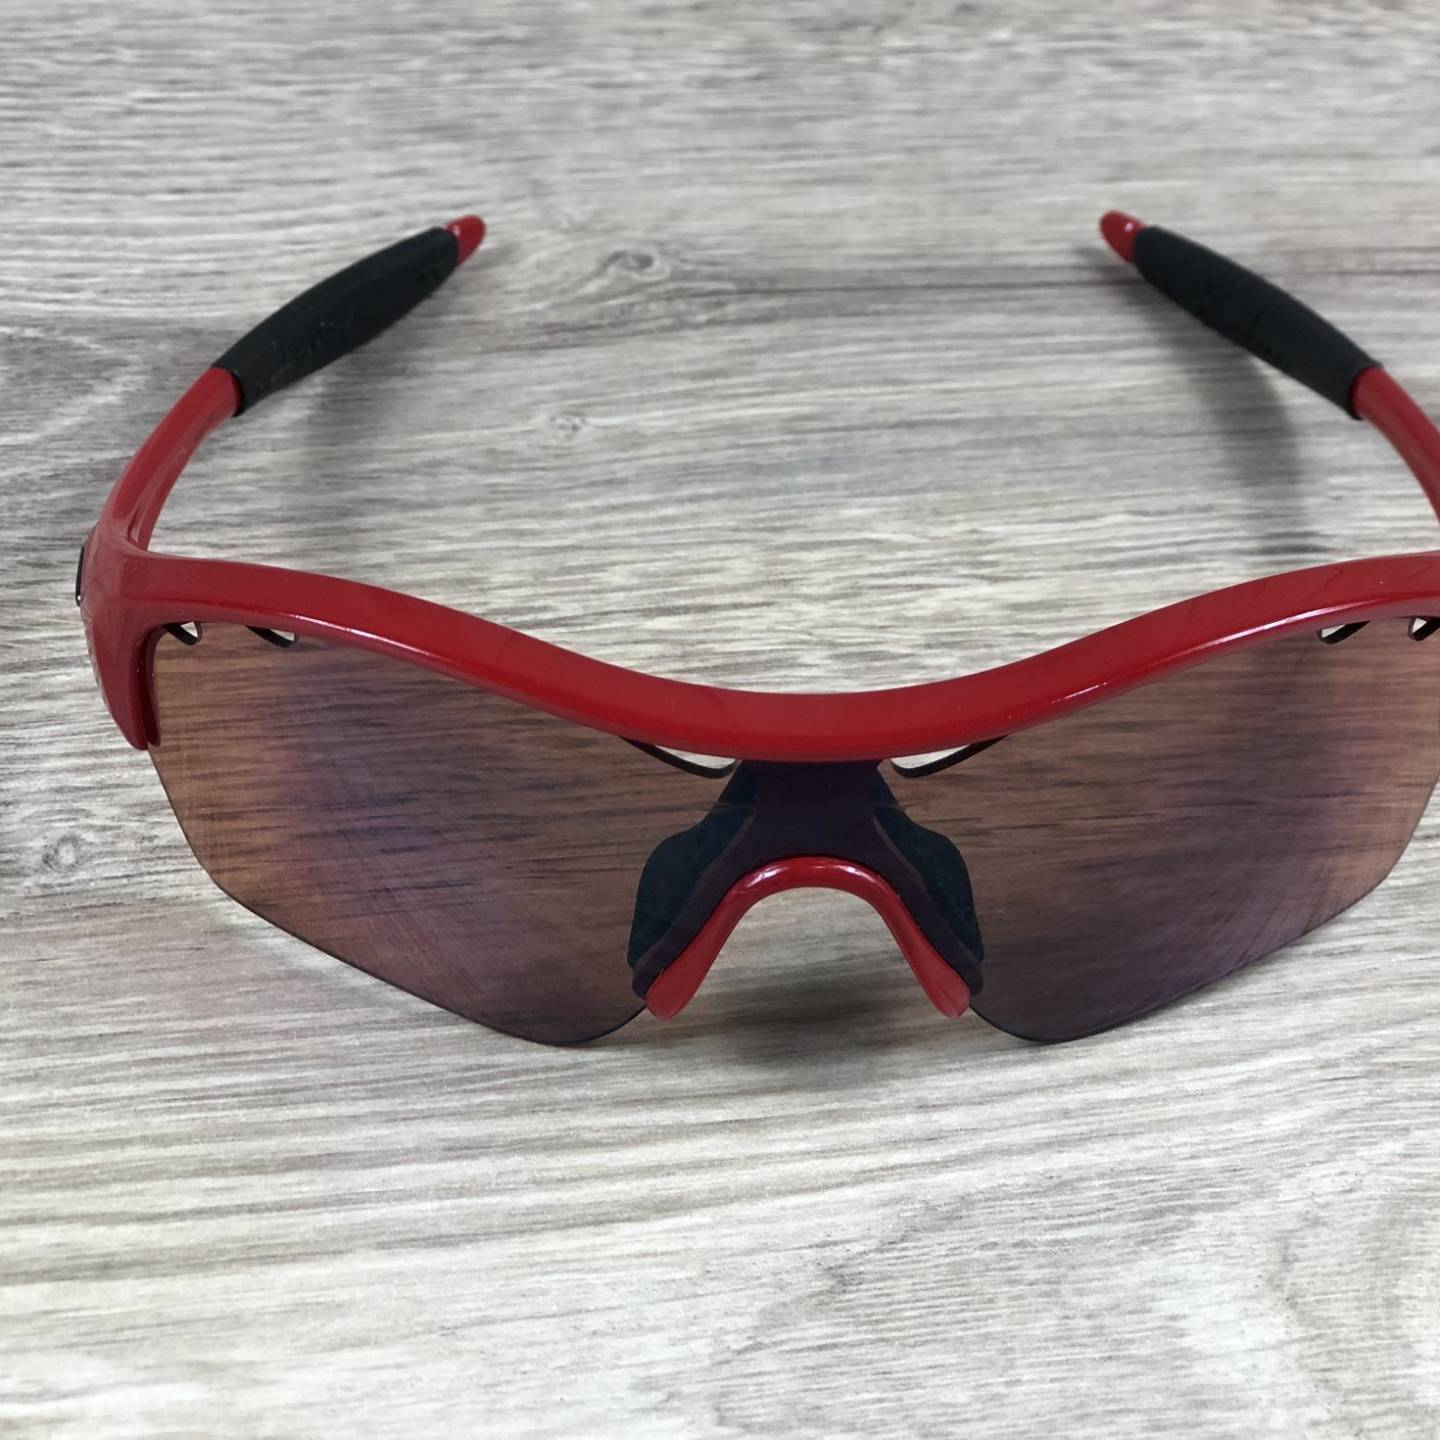 Enduring Women's Cycling Sunglasses Red 00002702 (3)